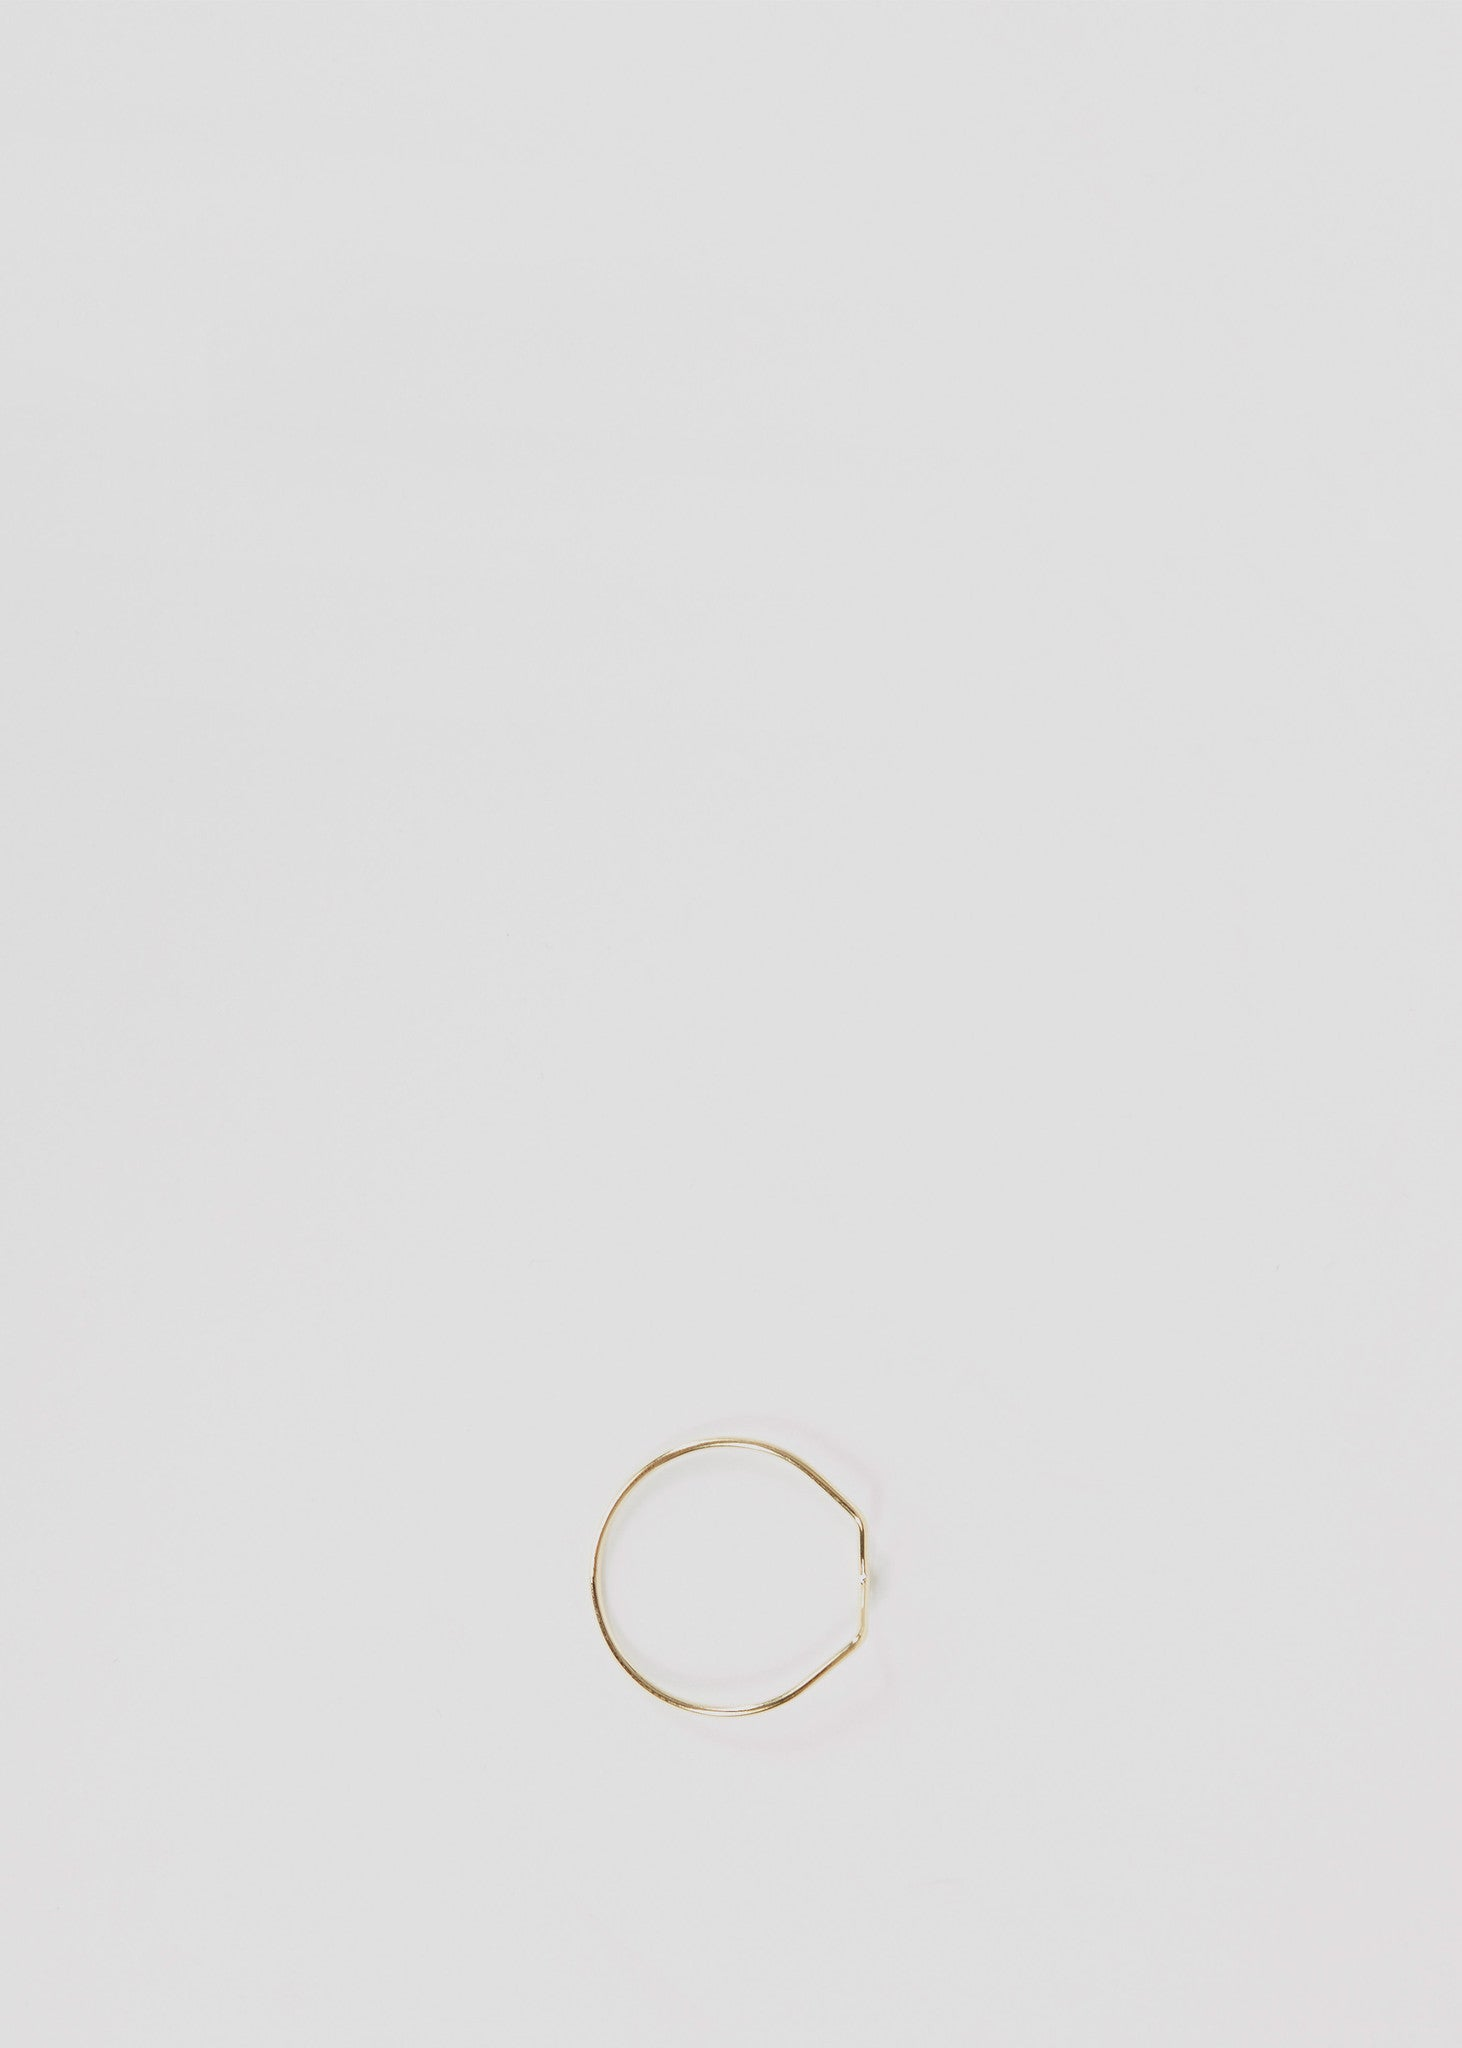 Arrow Ring 2 Gold Trois Petits Points Womens Jewellery Ring- someplace